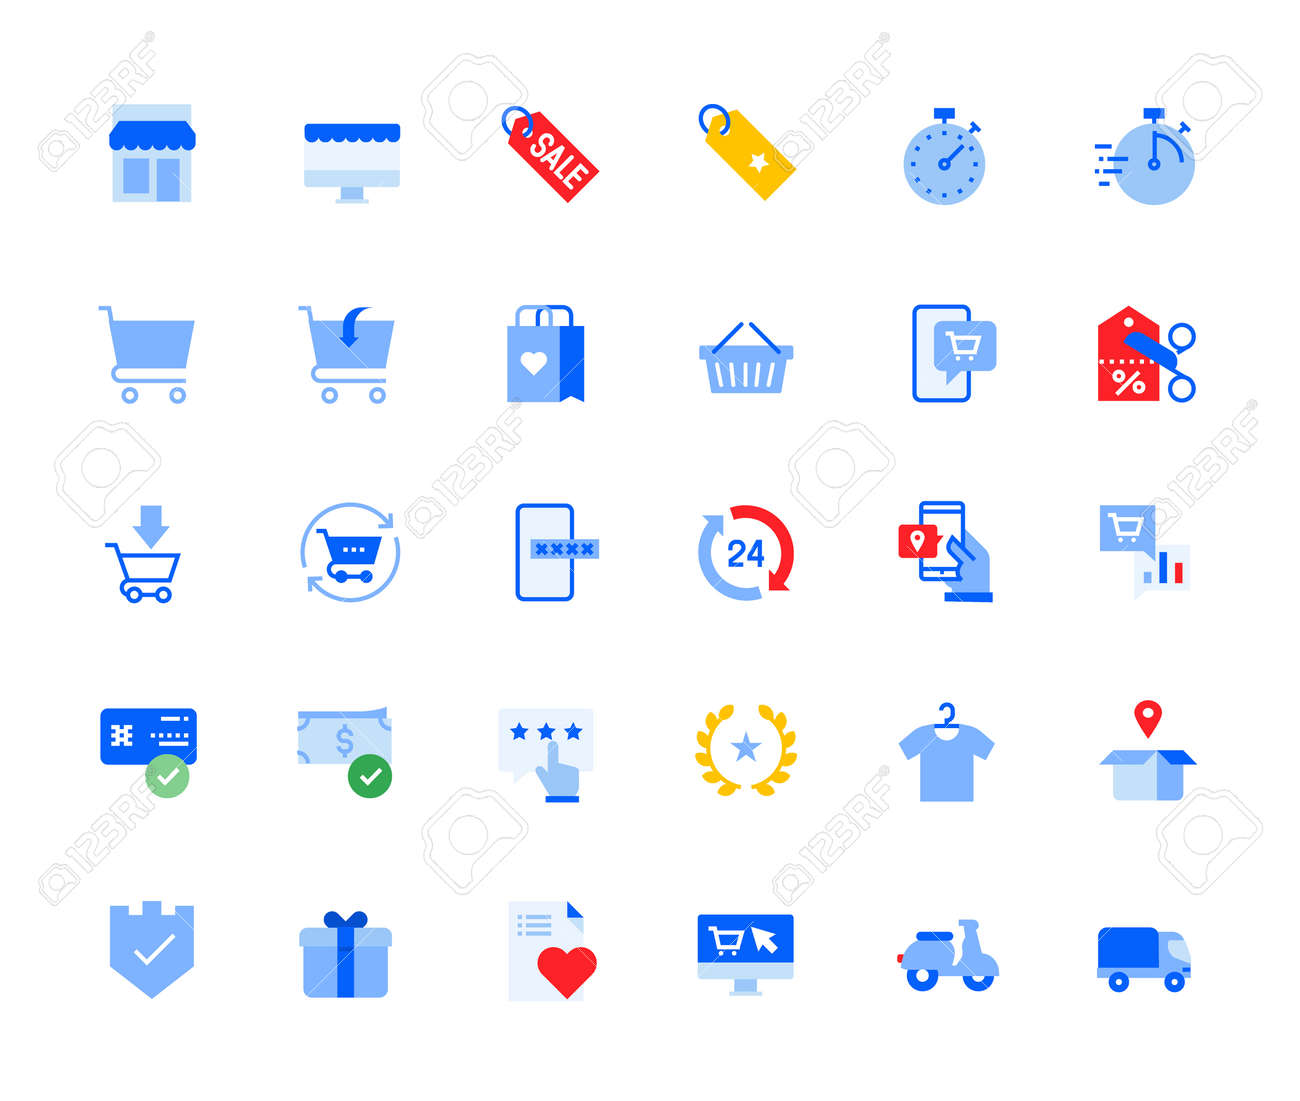 Online shopping icons set for personal and business use. Vector illustration icons for graphic and web design, app development, marketing material and business presentation. - 167494847